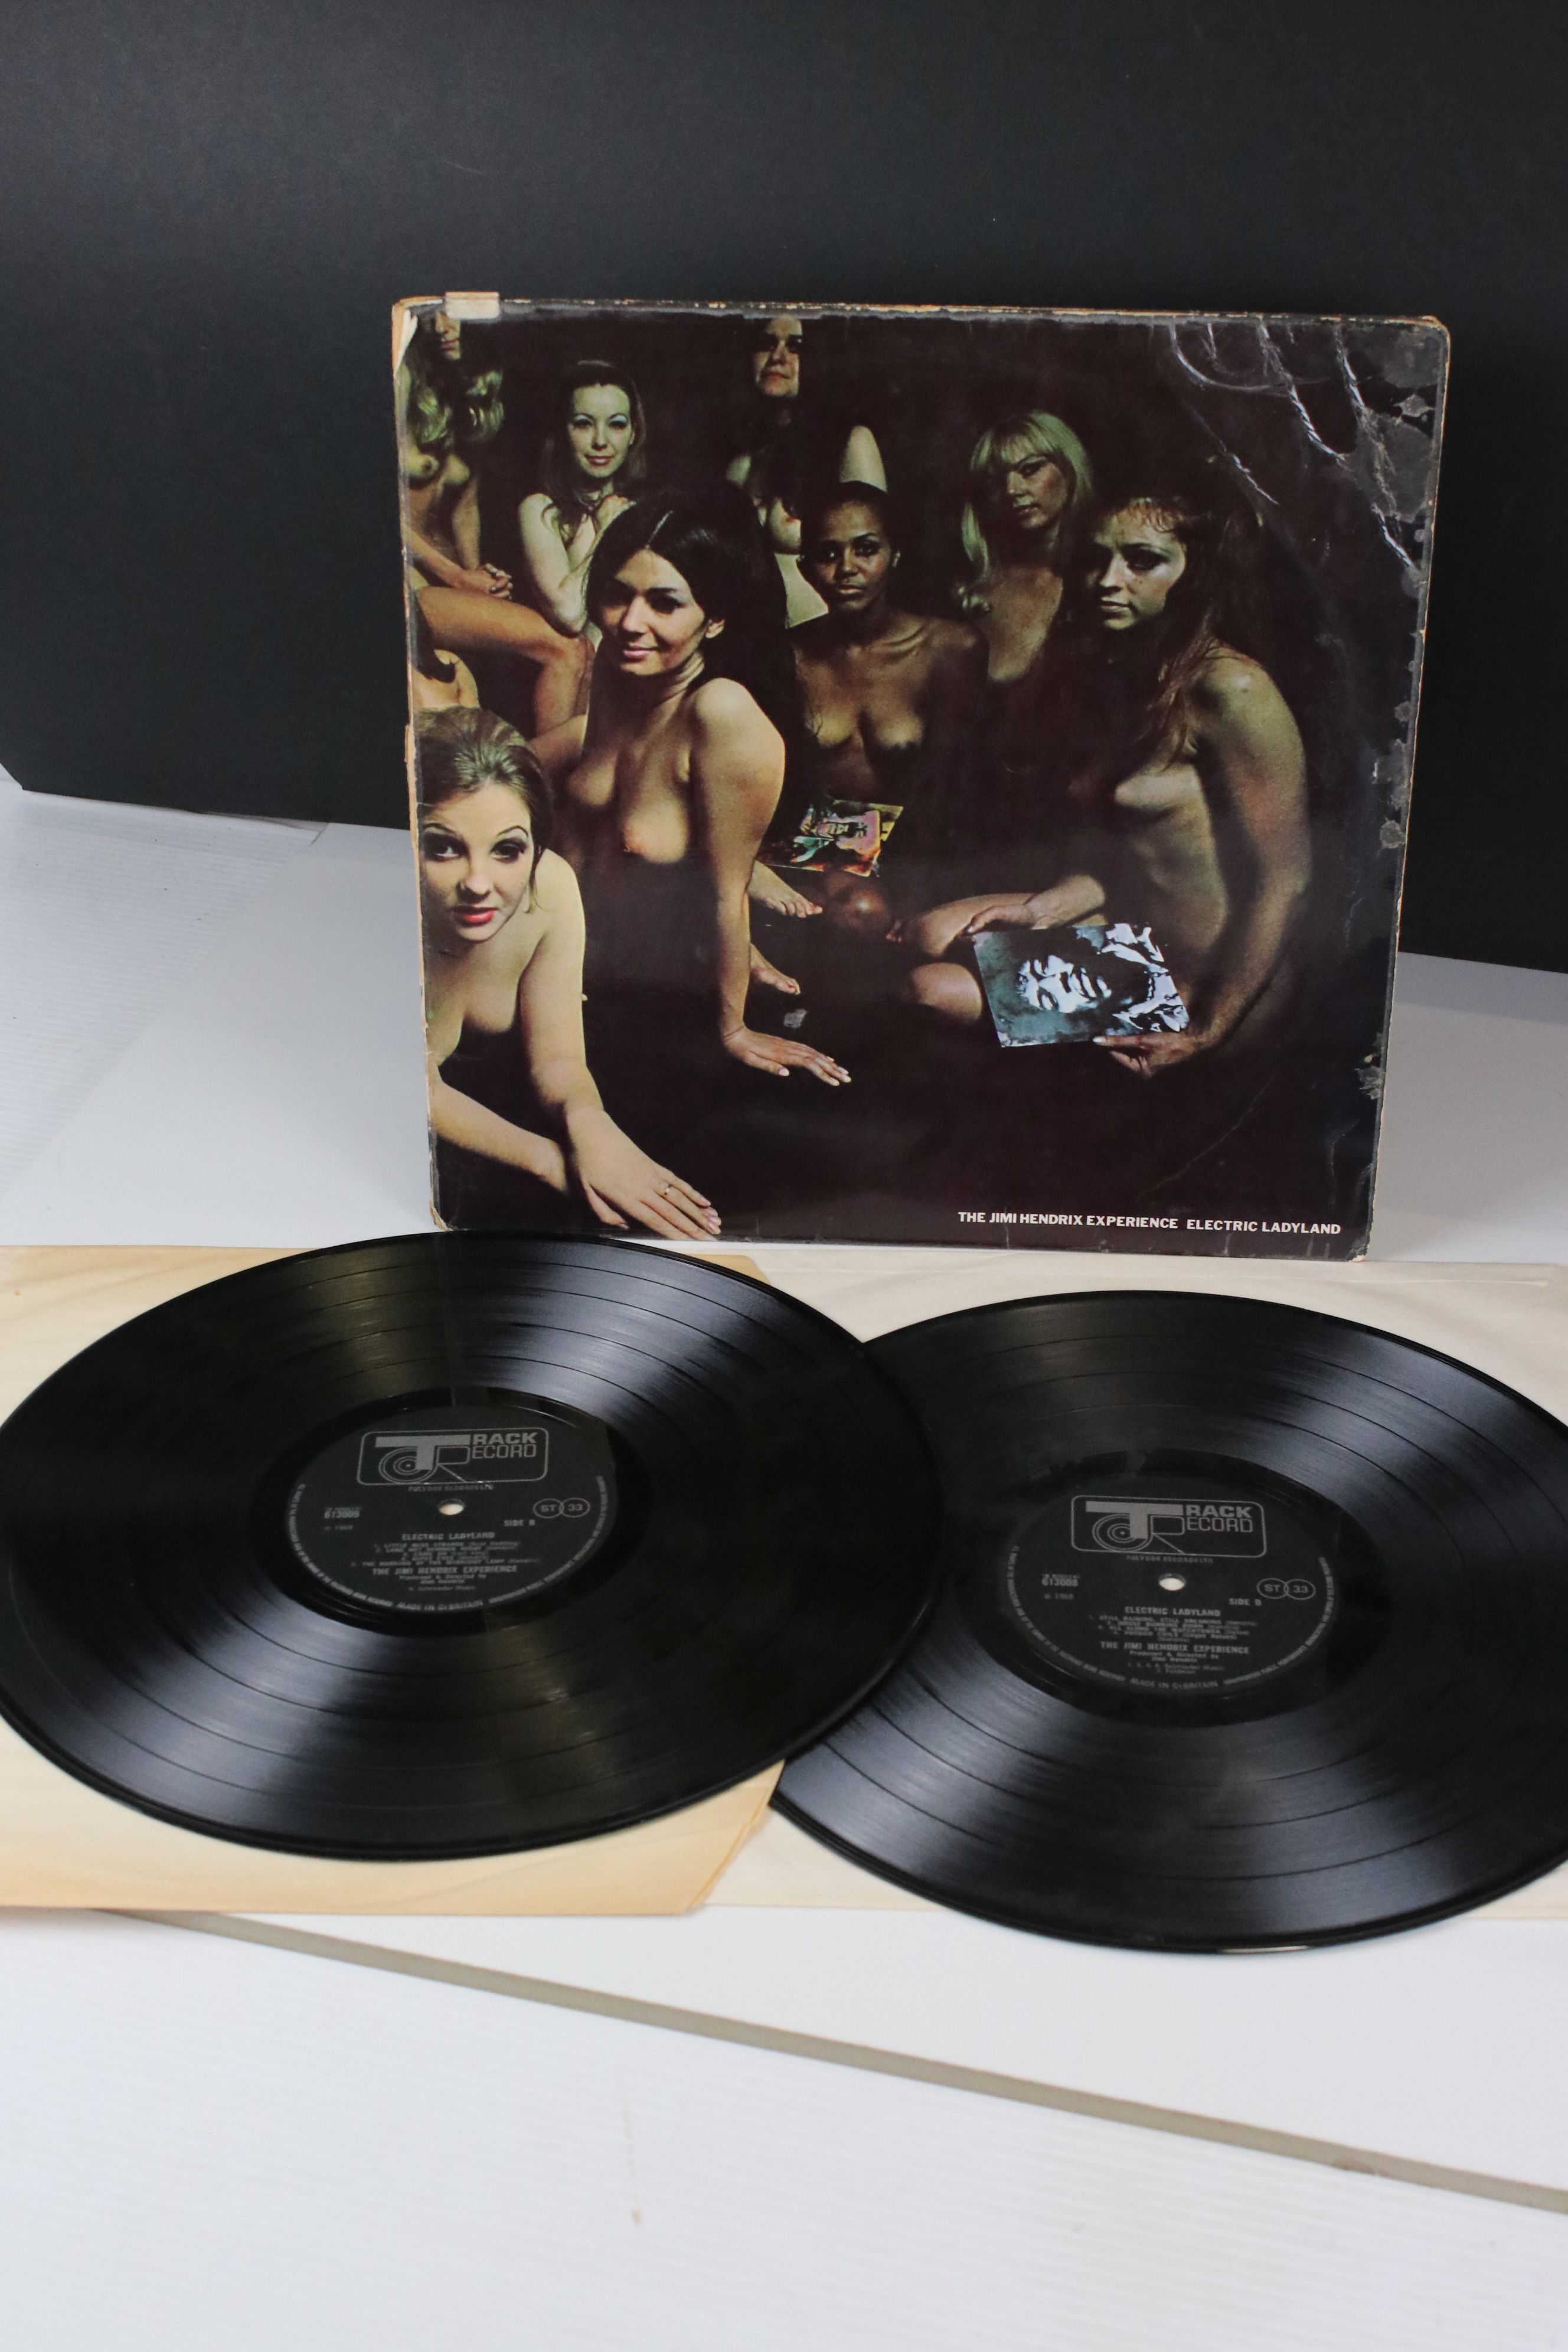 Vinyl - Jimi Hendrix Electric Ladyland LP on Track 613008/9 with inner with blue lettering with Jimi